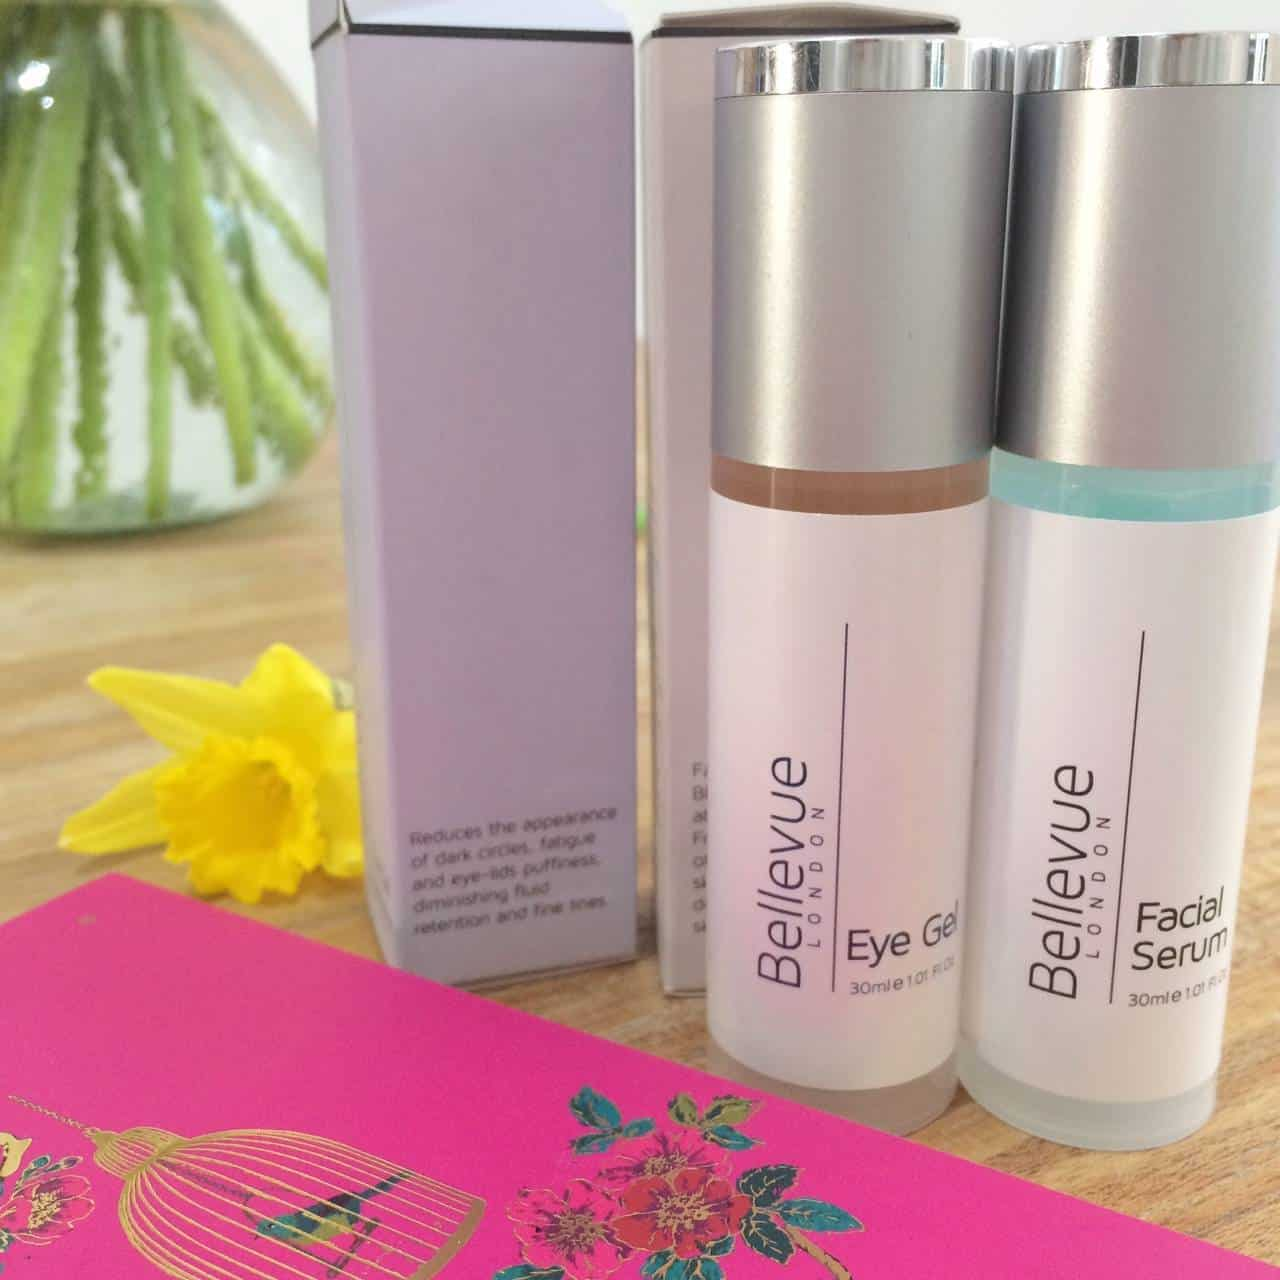 Bellevue of London Beauty Products Review